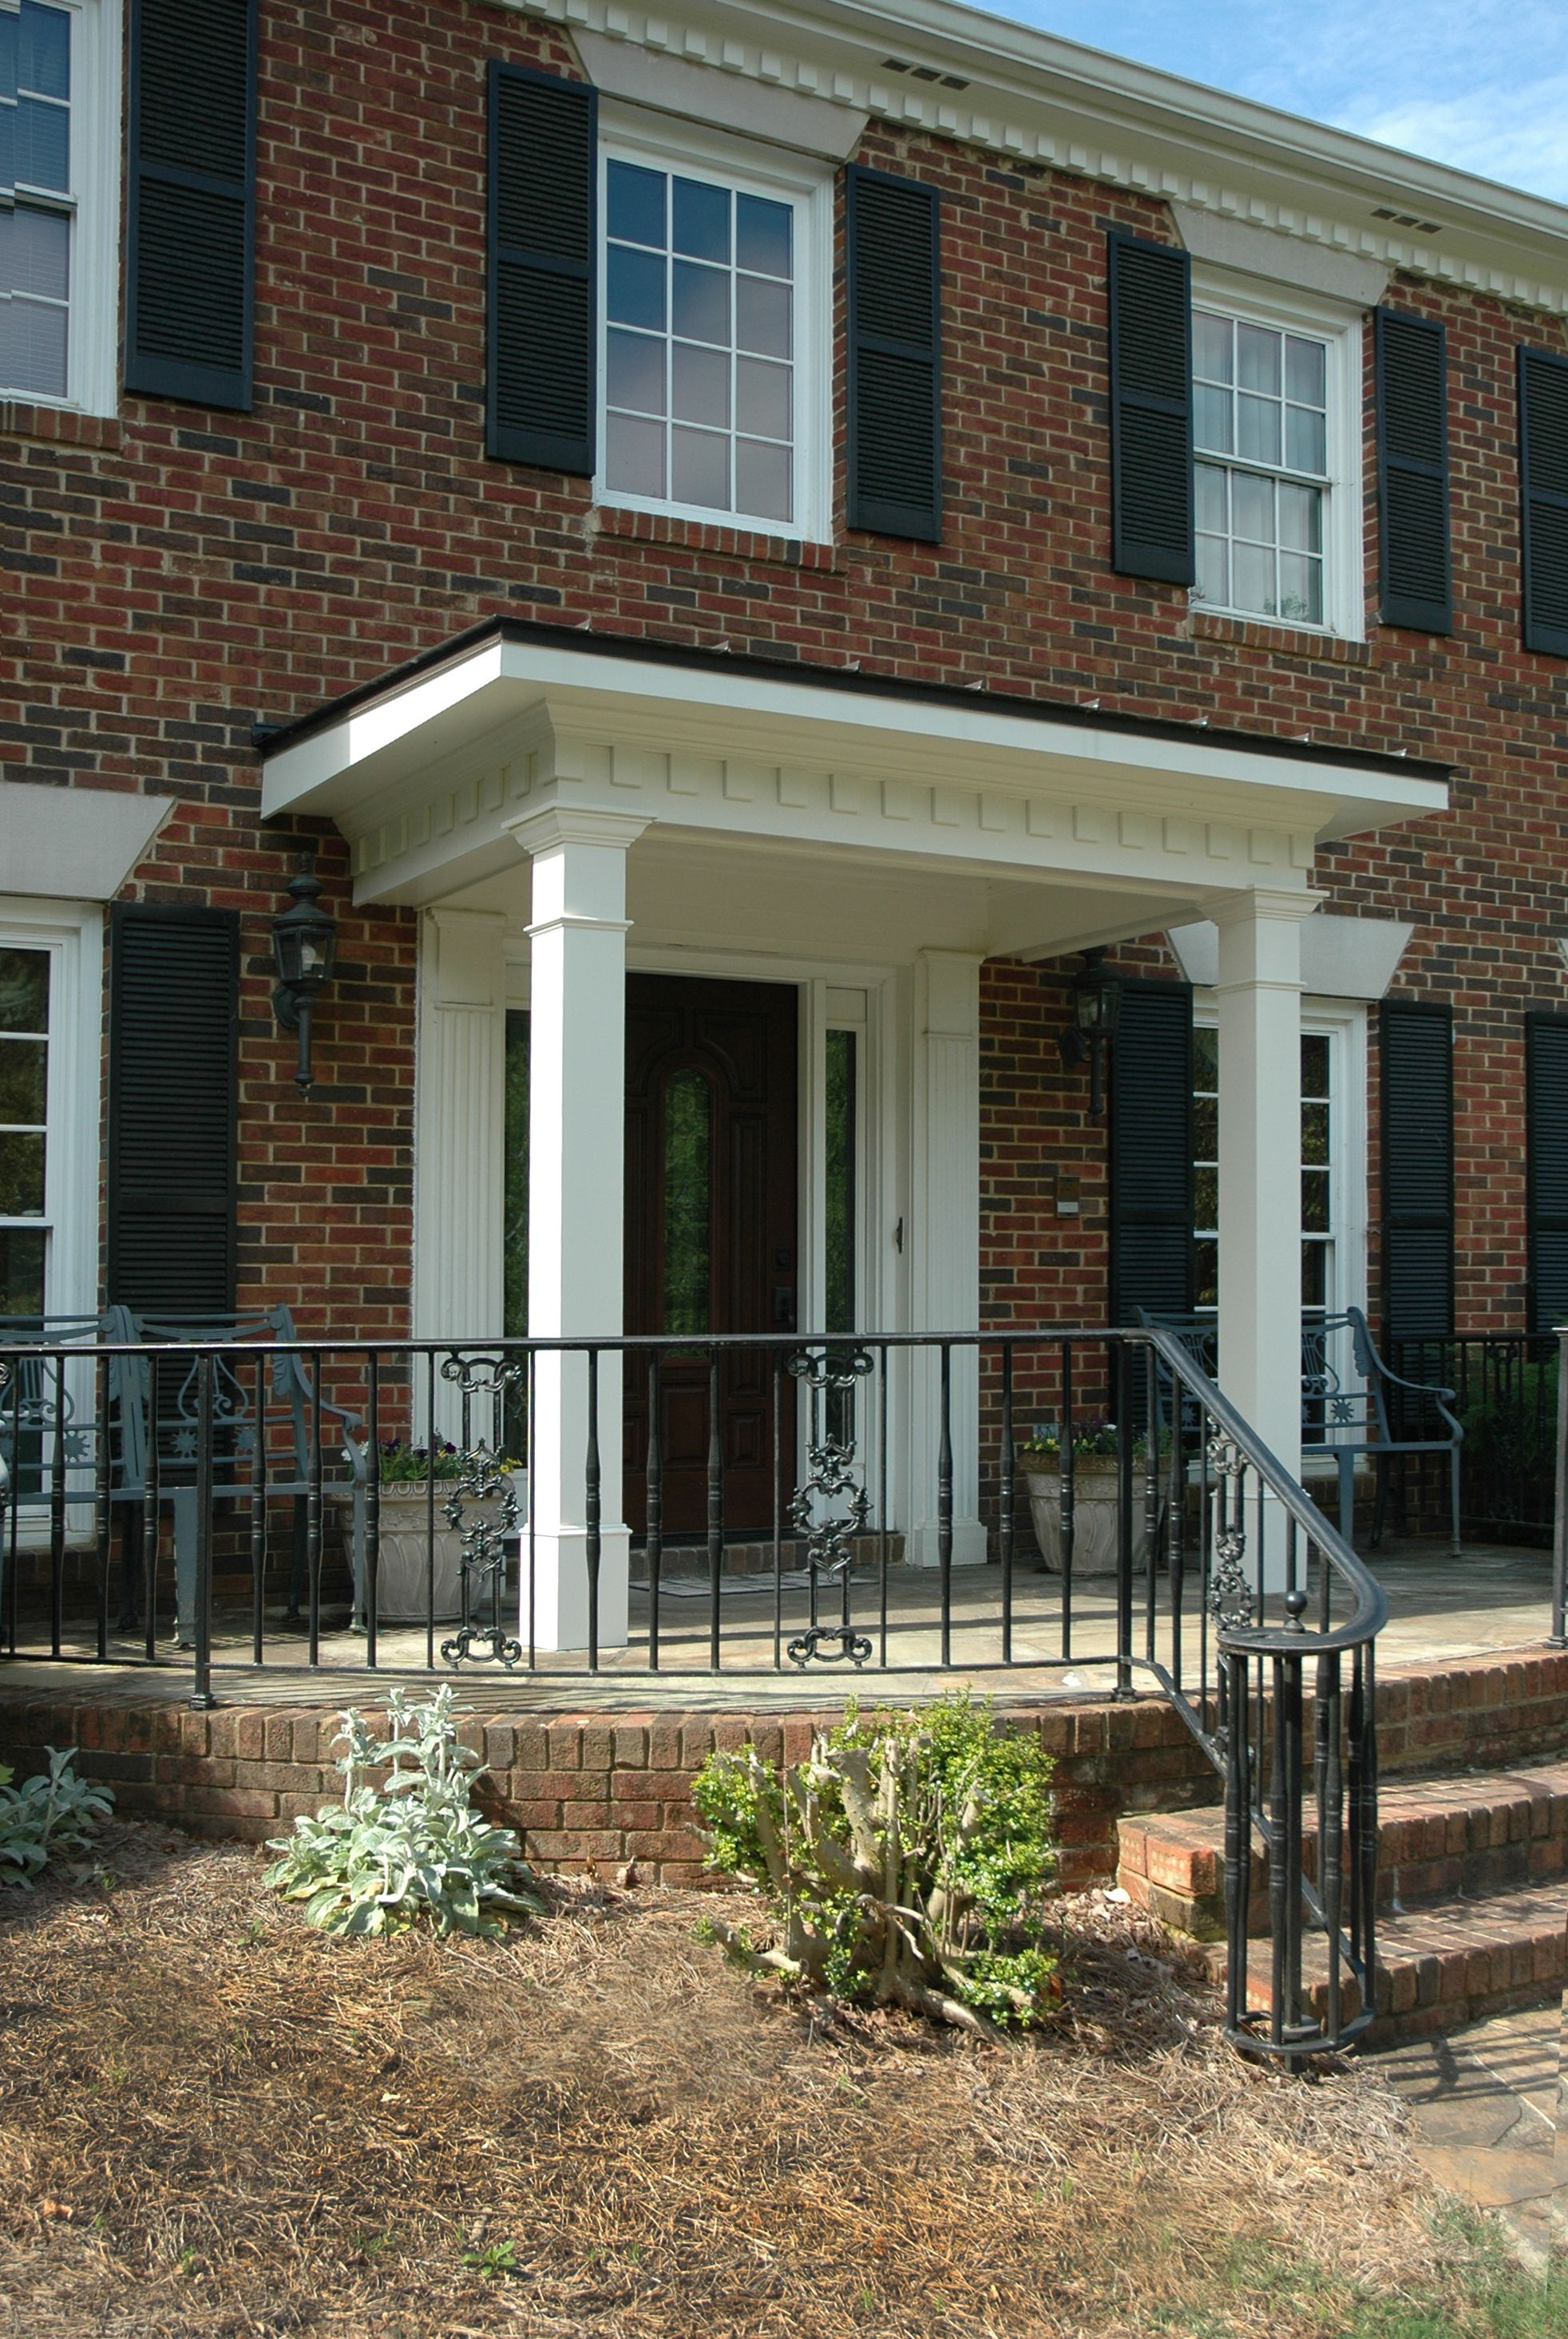 Flat Roof Portico Designed And Built By Georgia Front Porch Portico Design Porch Flat Roof Front Porch Design